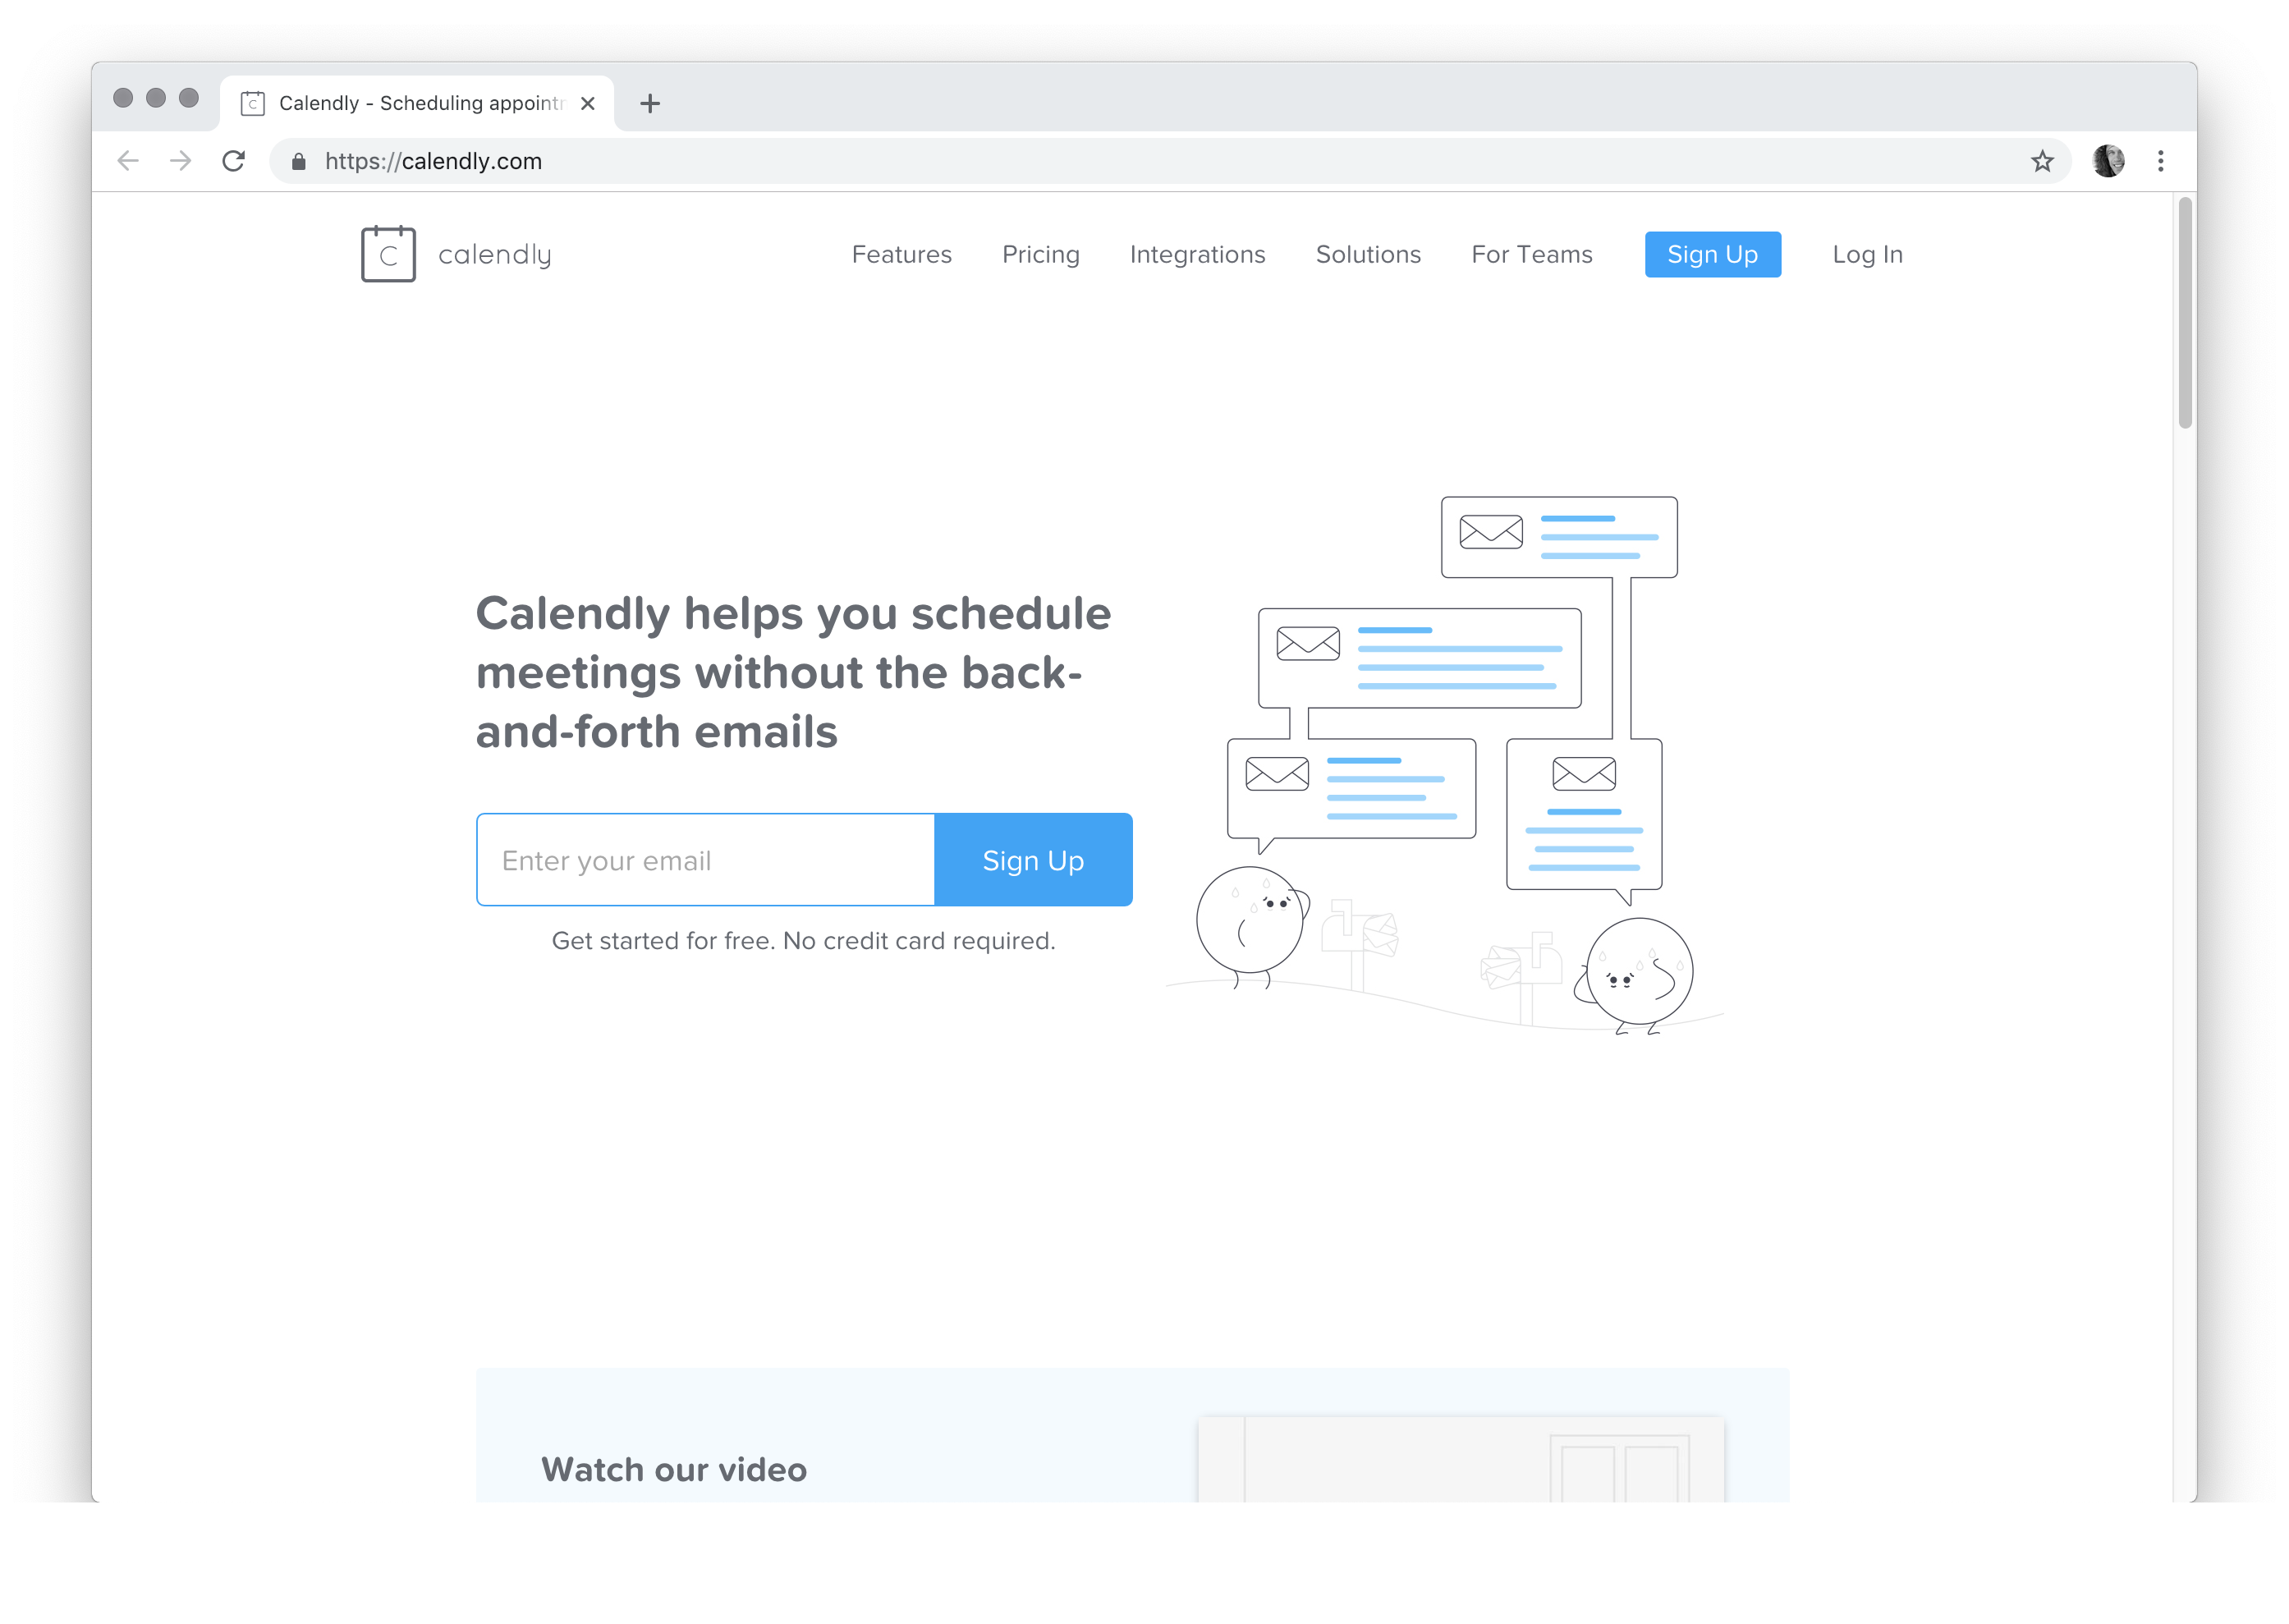 Calendly helps you schedule meetings without the back-and-forth emails